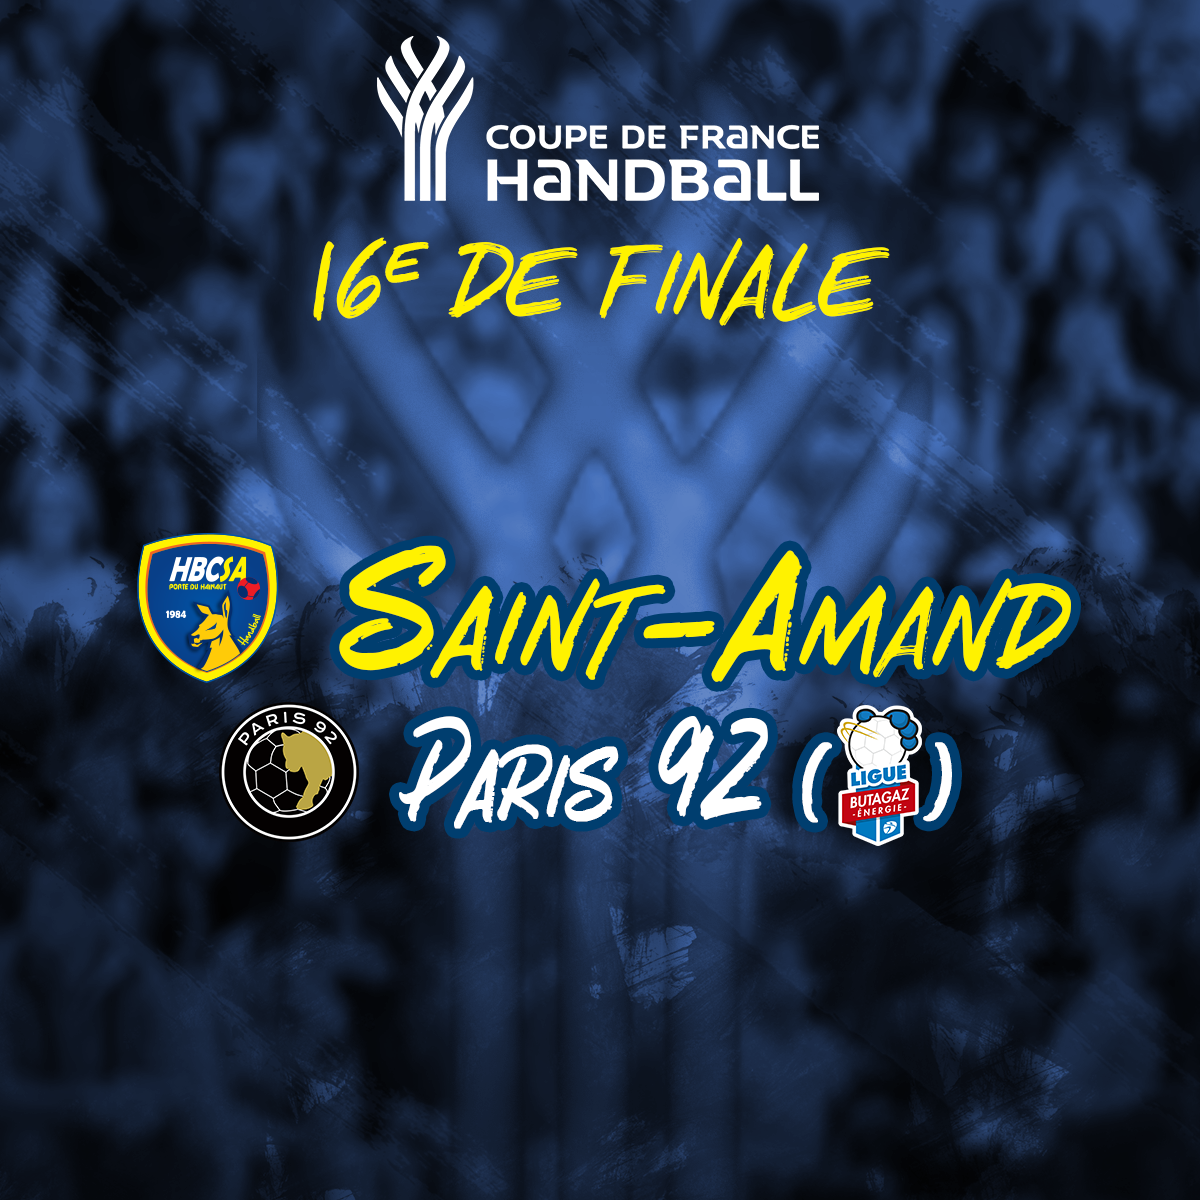 Paris 92 pour le Saint-Amand Handball !